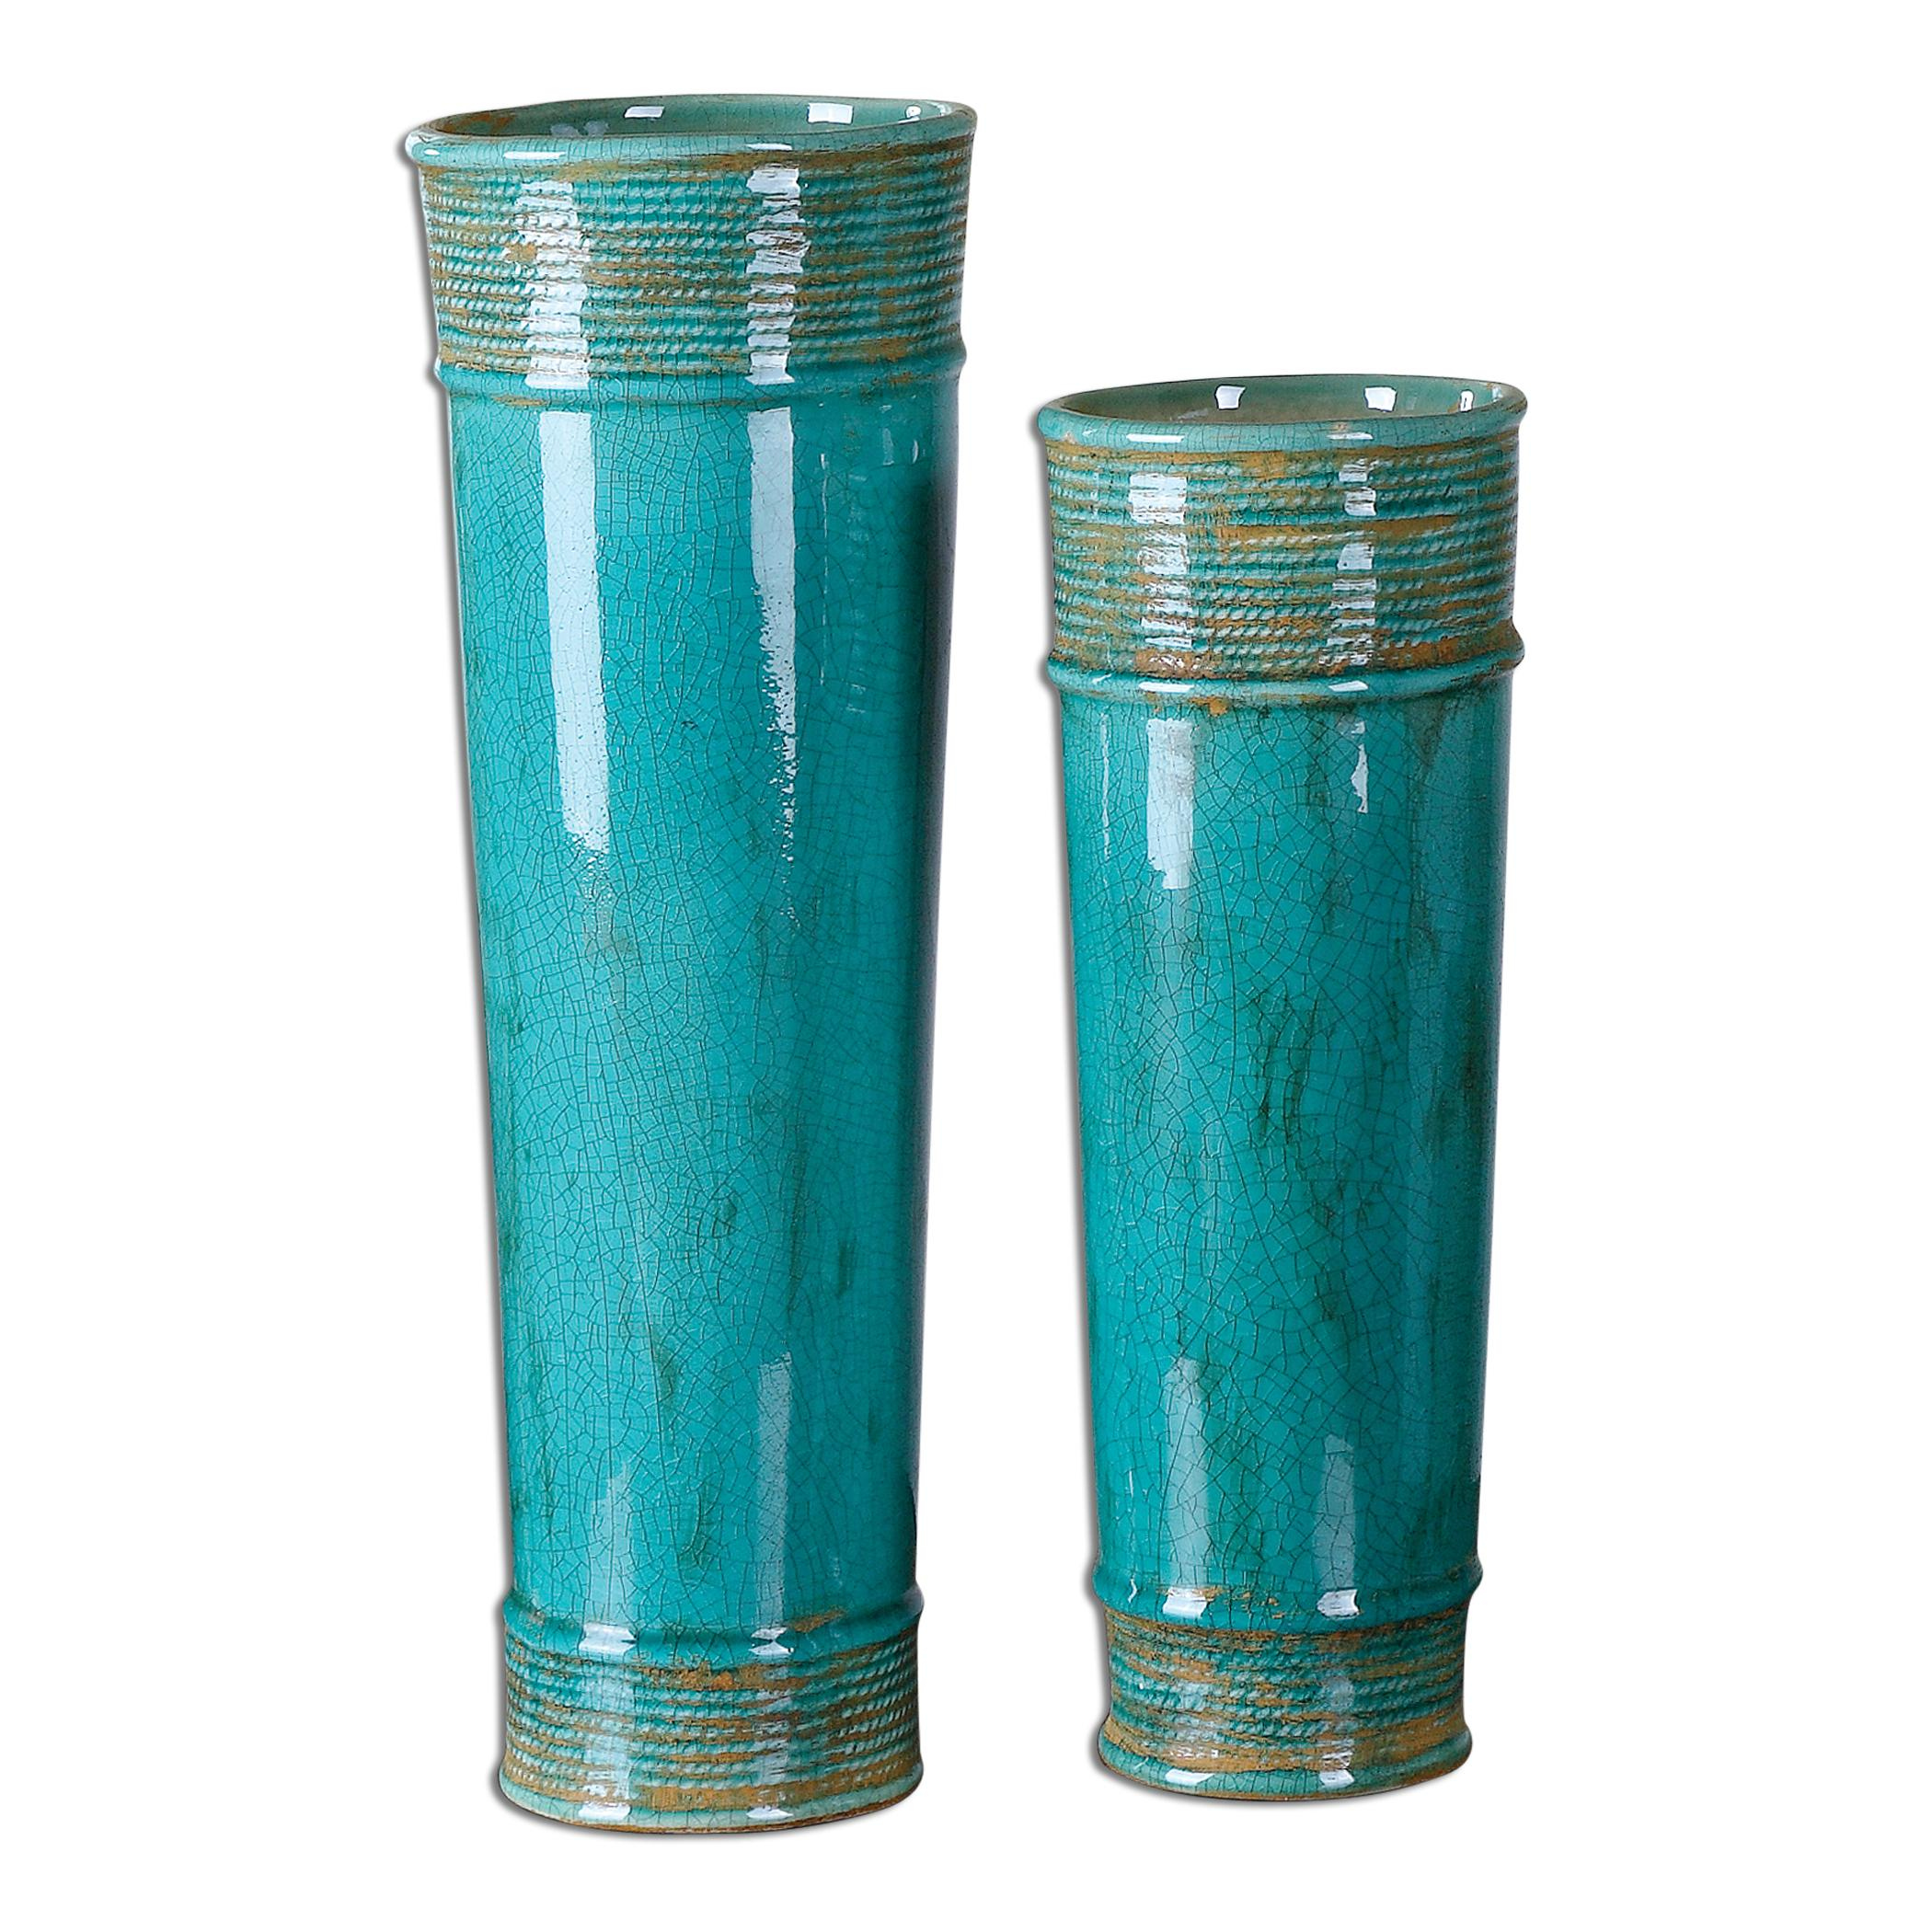 Uttermost Accessories Thane Teal Green Vases, Set of  2 - Item Number: 19835